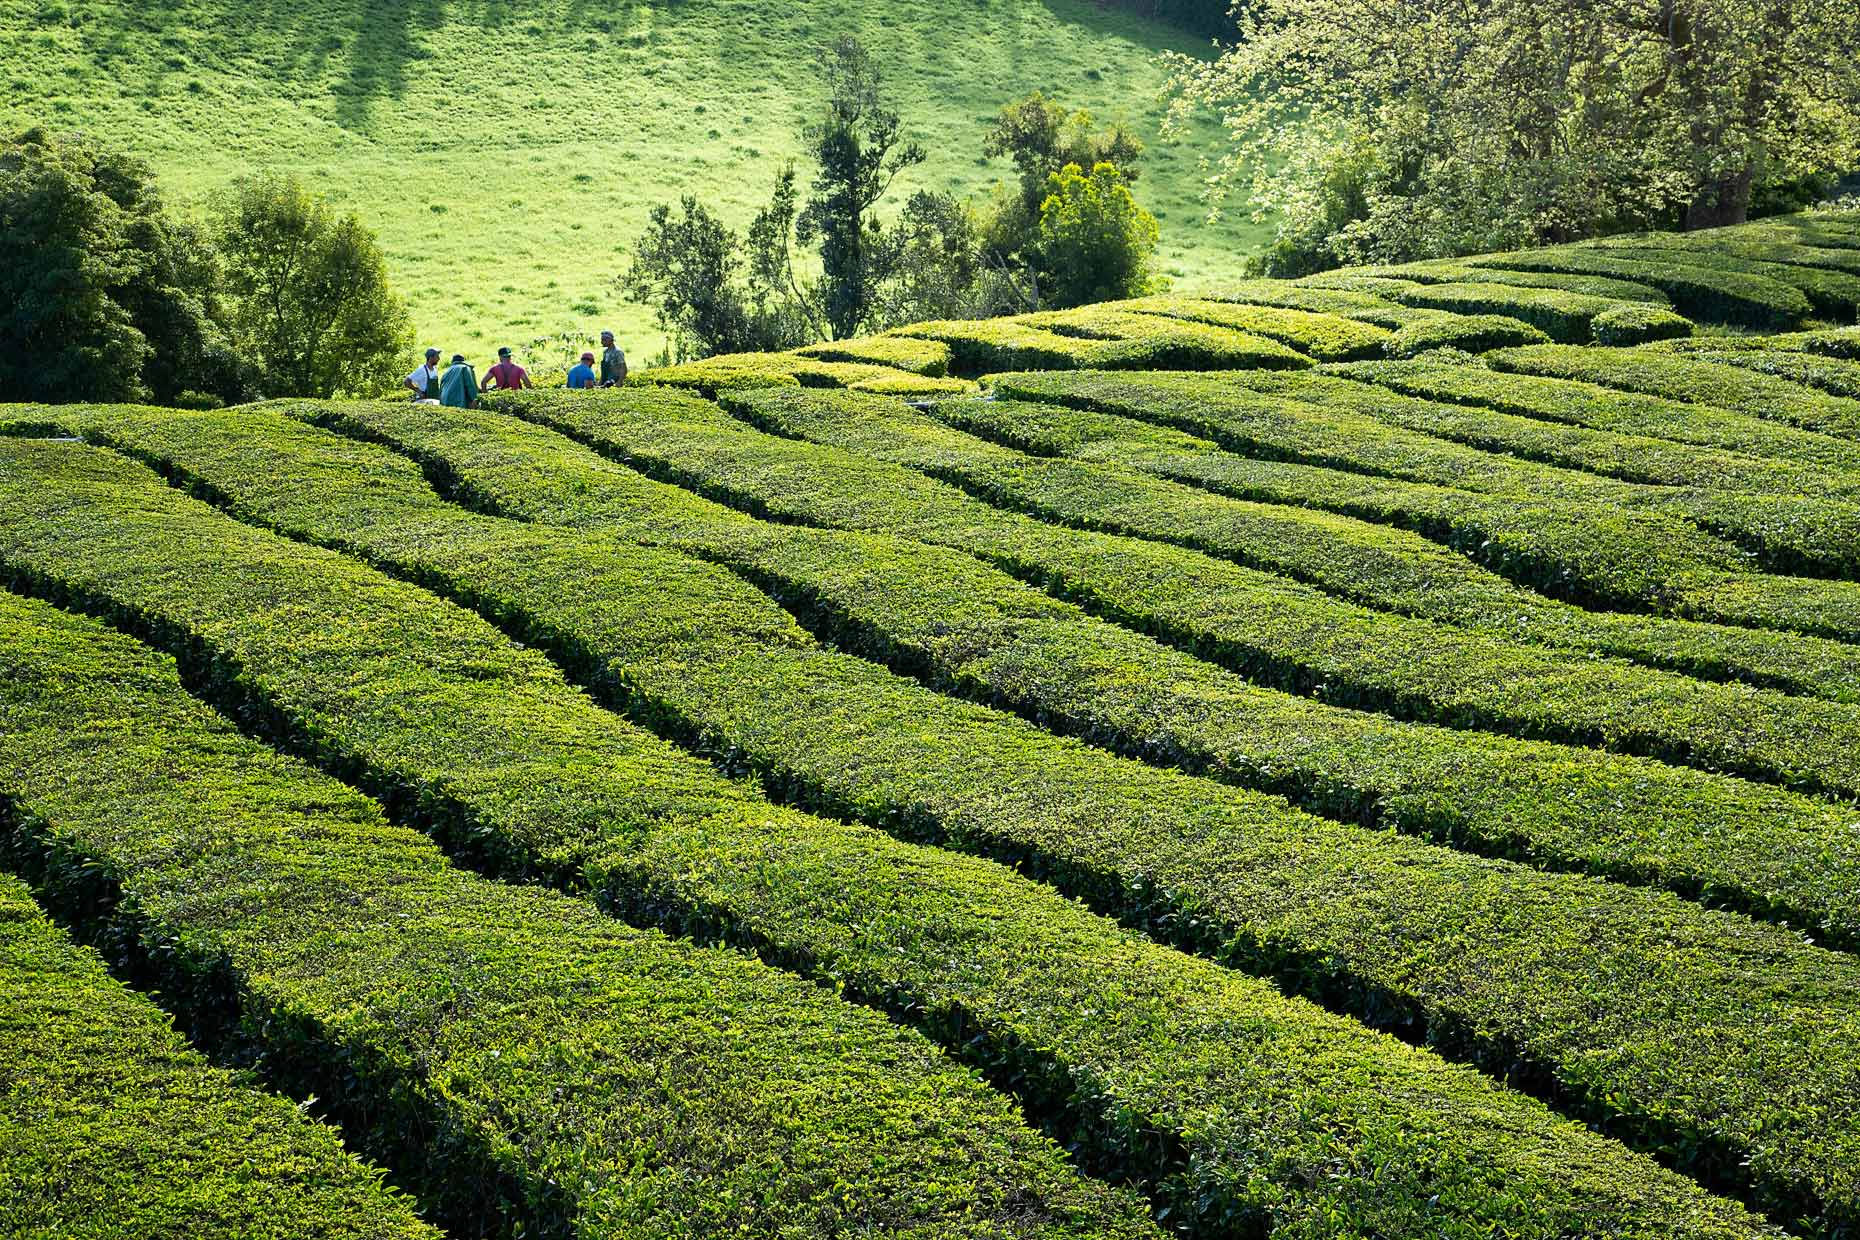 Sao-Miguel-Azores-Gorreana-Tea-Plantation-Portugal-Travel-Photography-Caryn-B-Davis